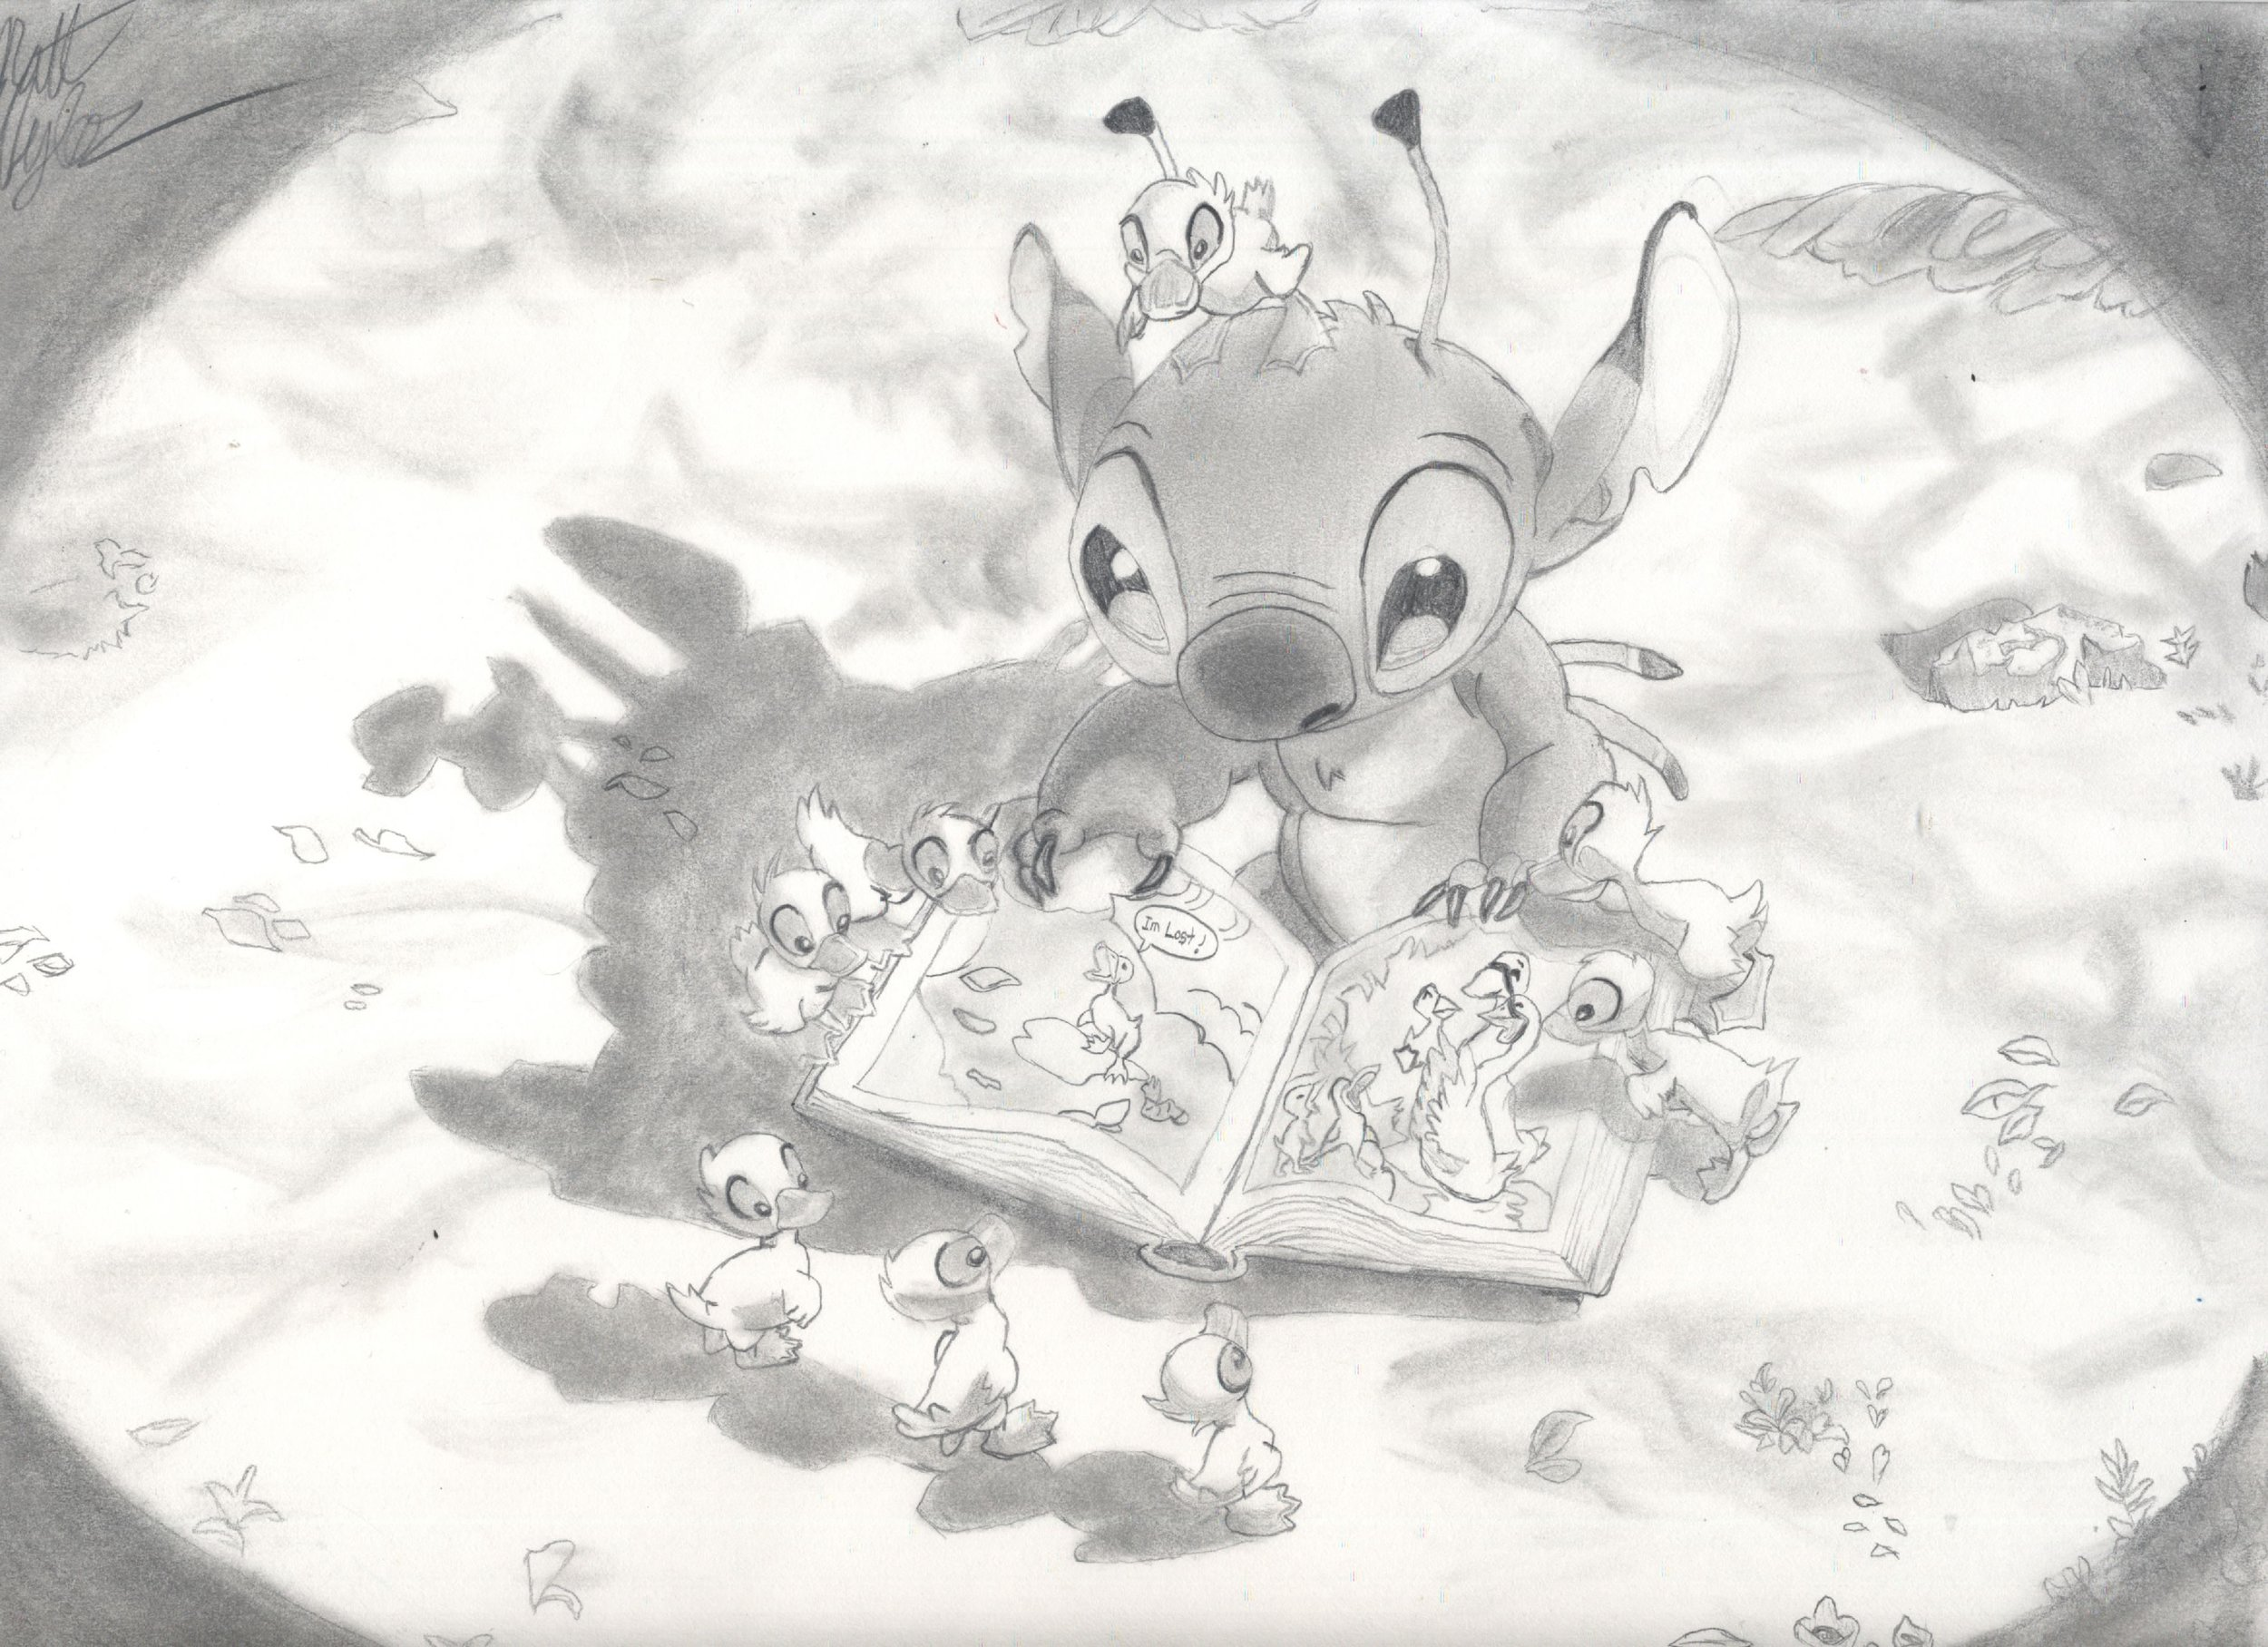 """A drawing of Stitch from the film """"Lilo & Stitch"""". Based off of a drawing from the end credits of the movie."""